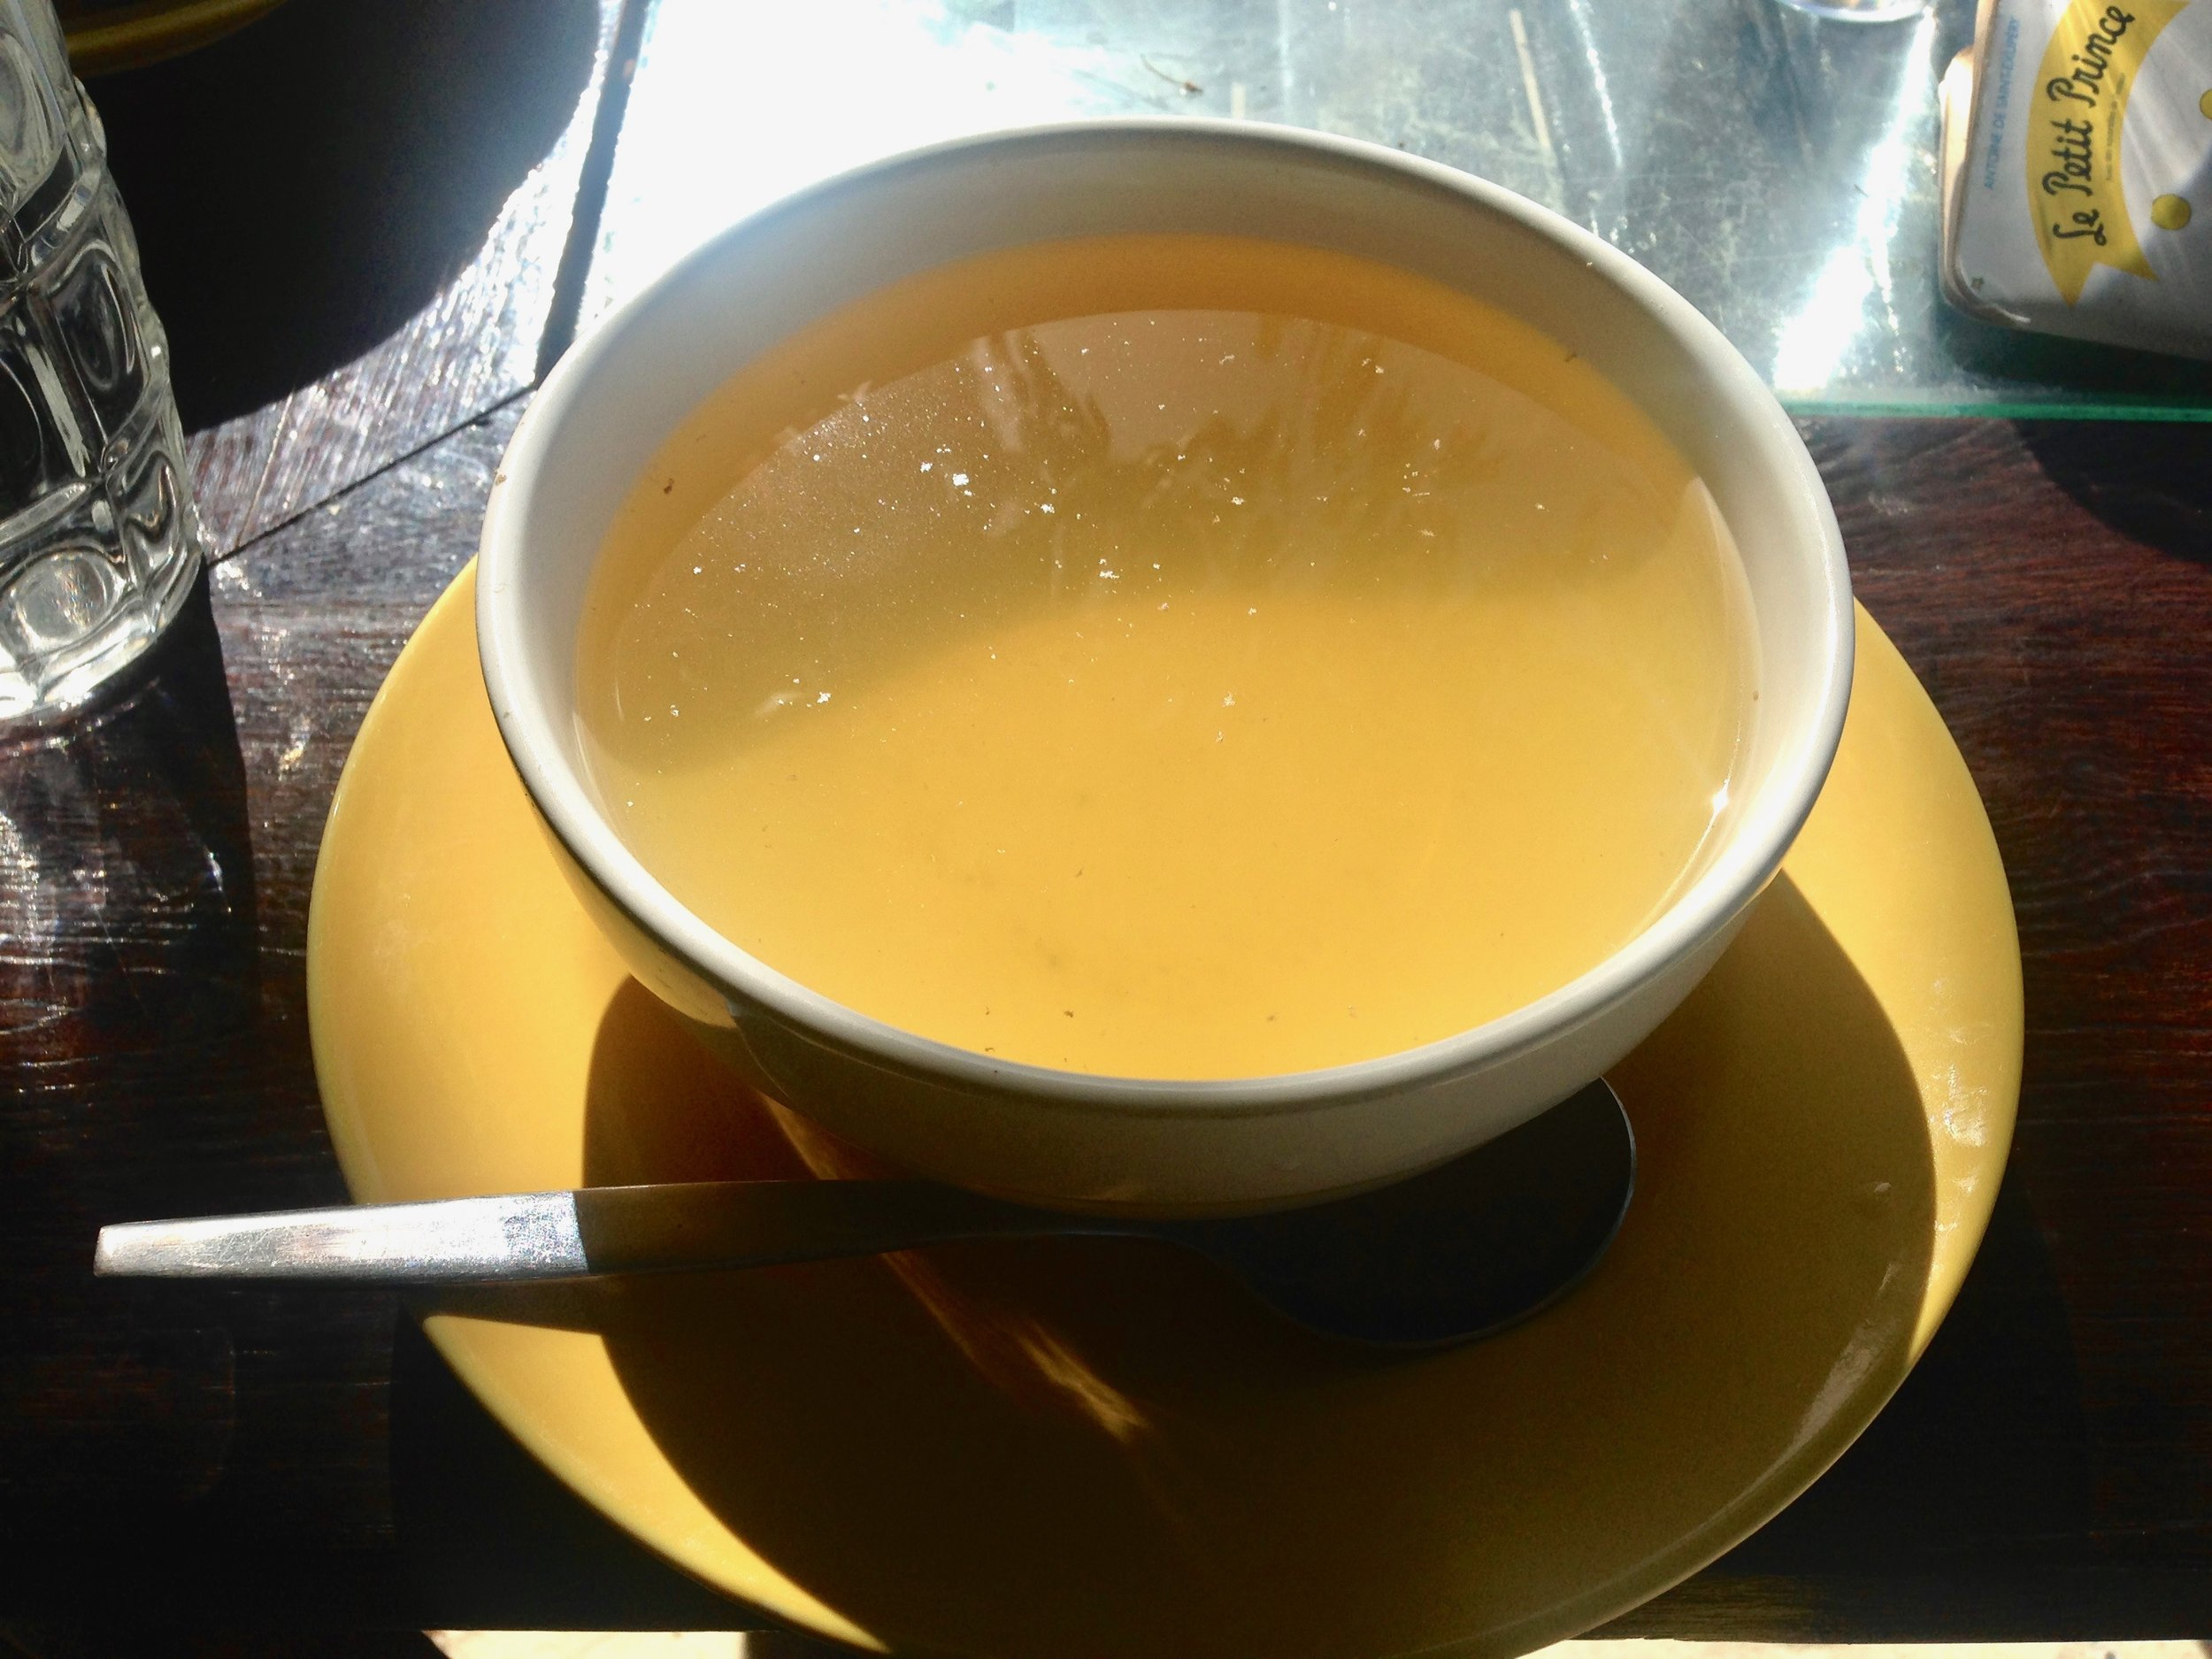 Spa broth soup was included in the detox package